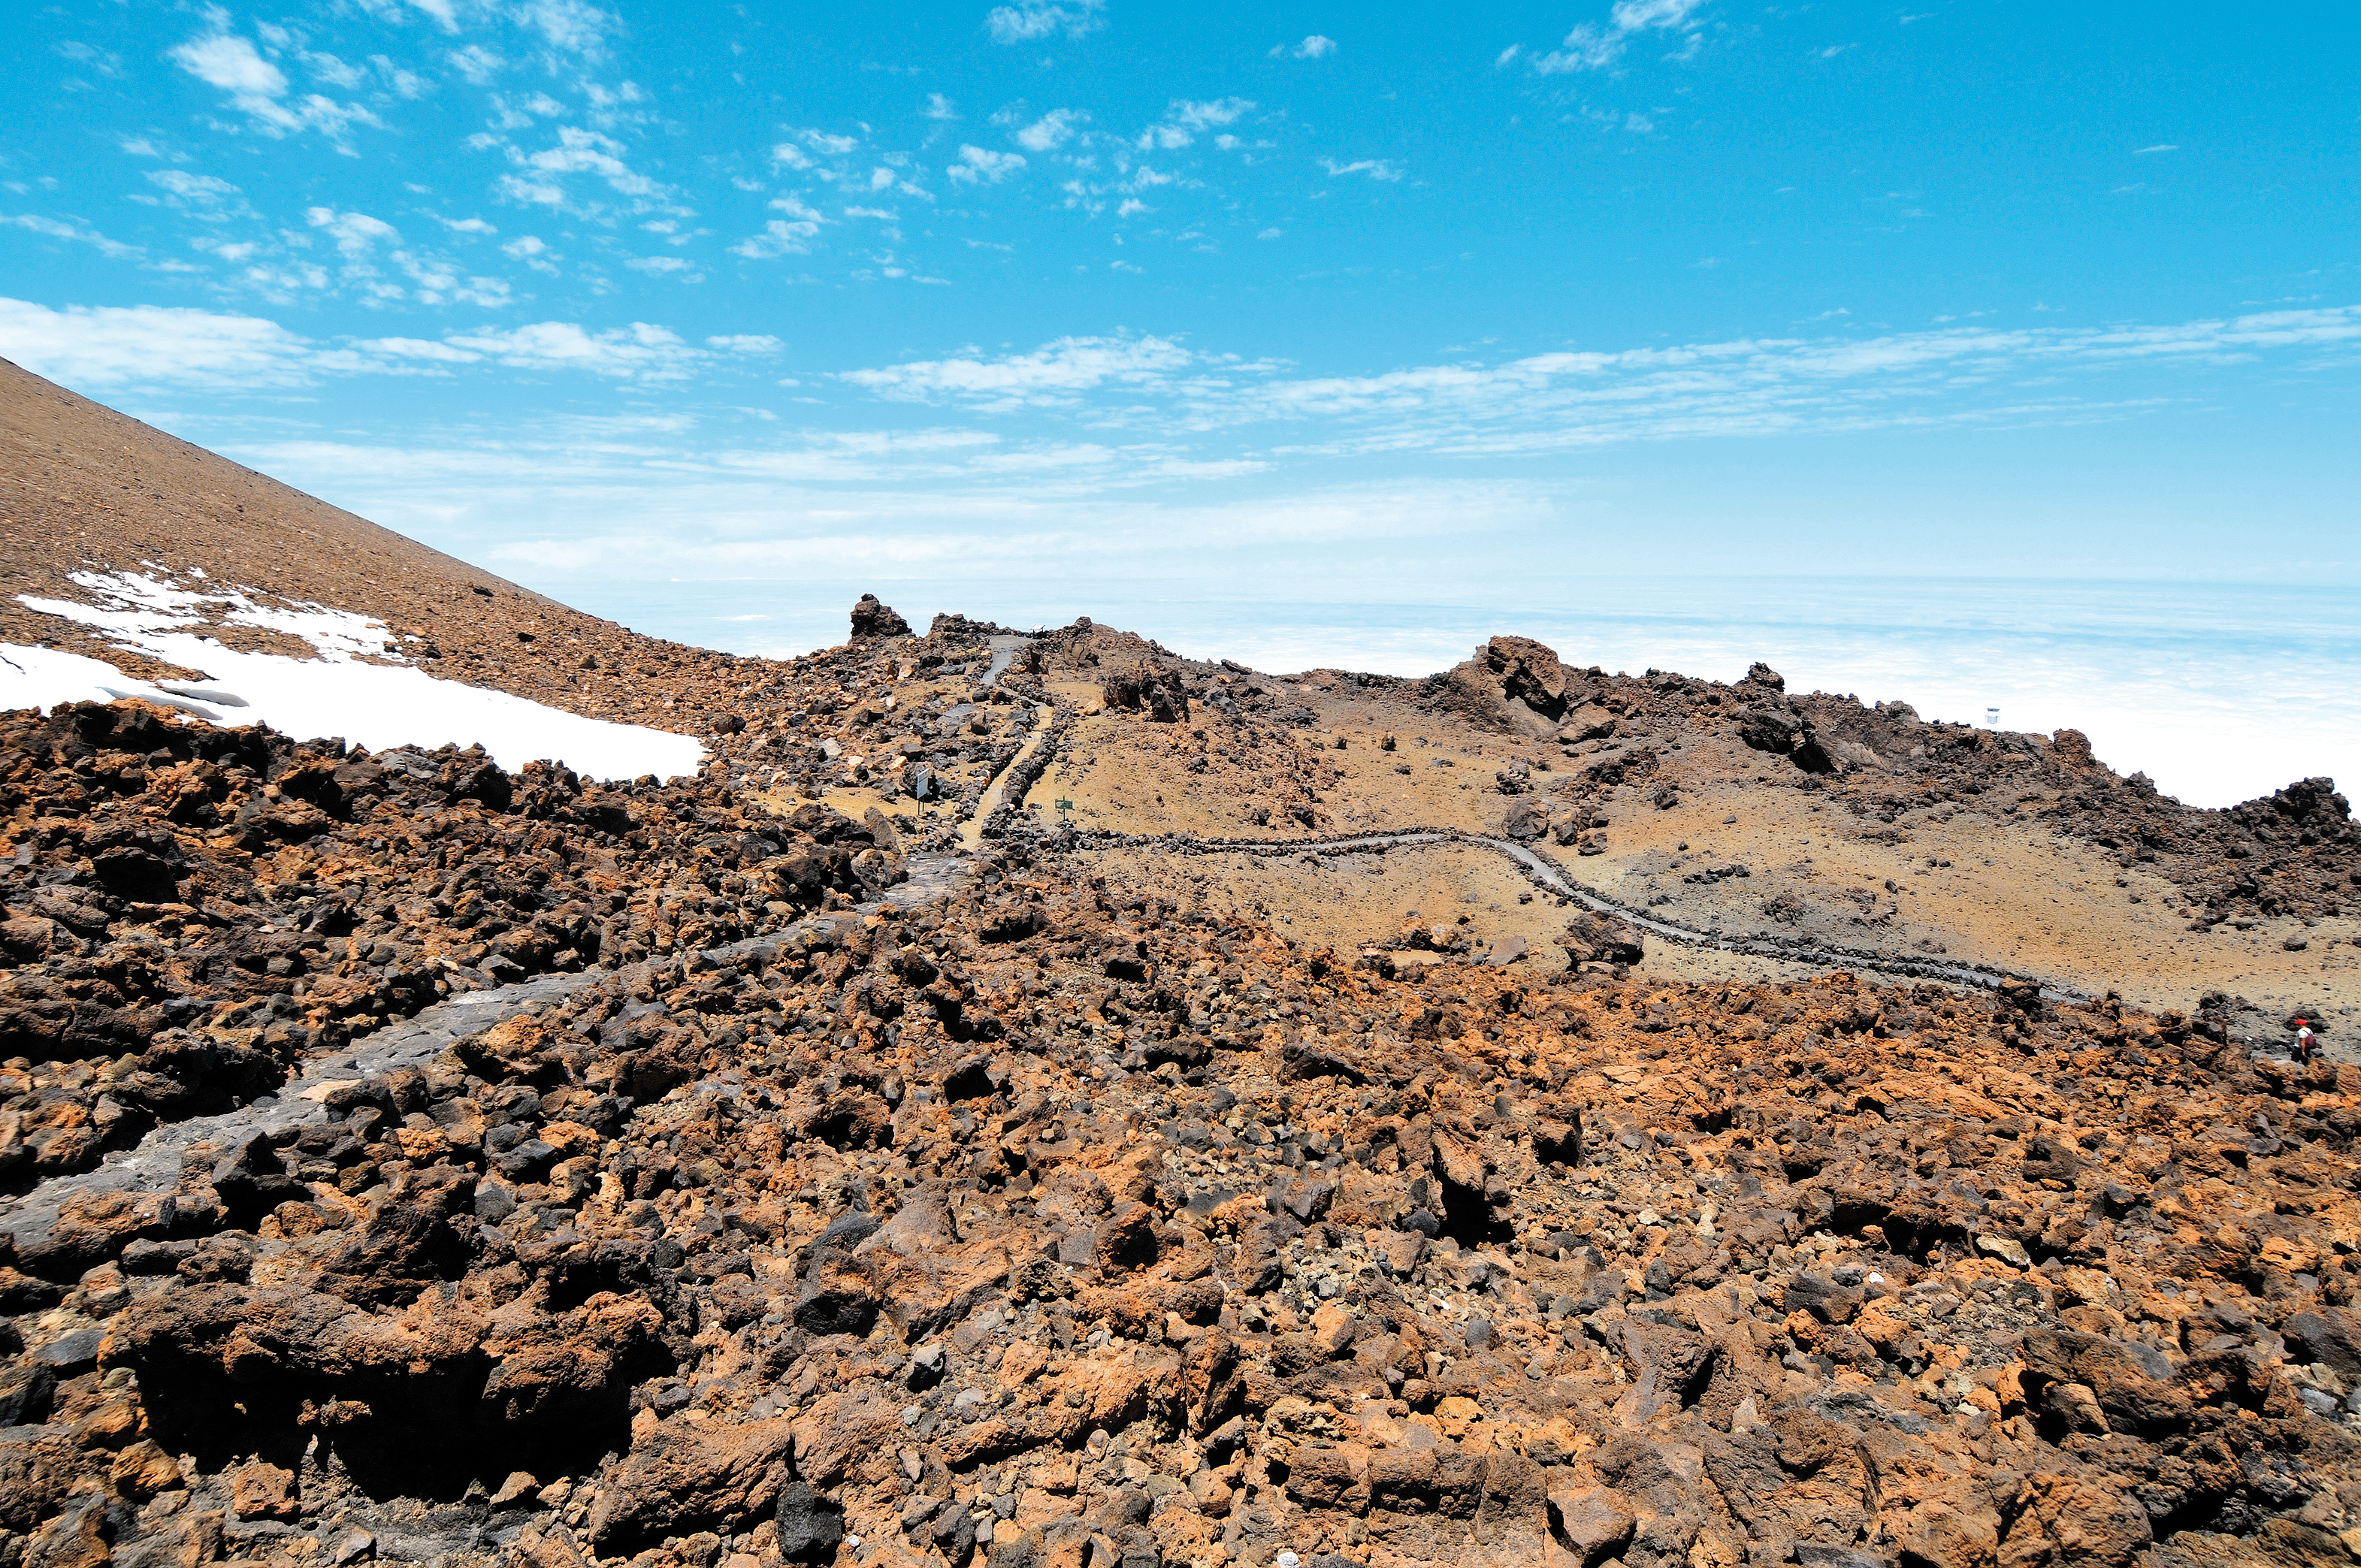 Alternative ways of climbing Teide without a permit: La Fortaleza